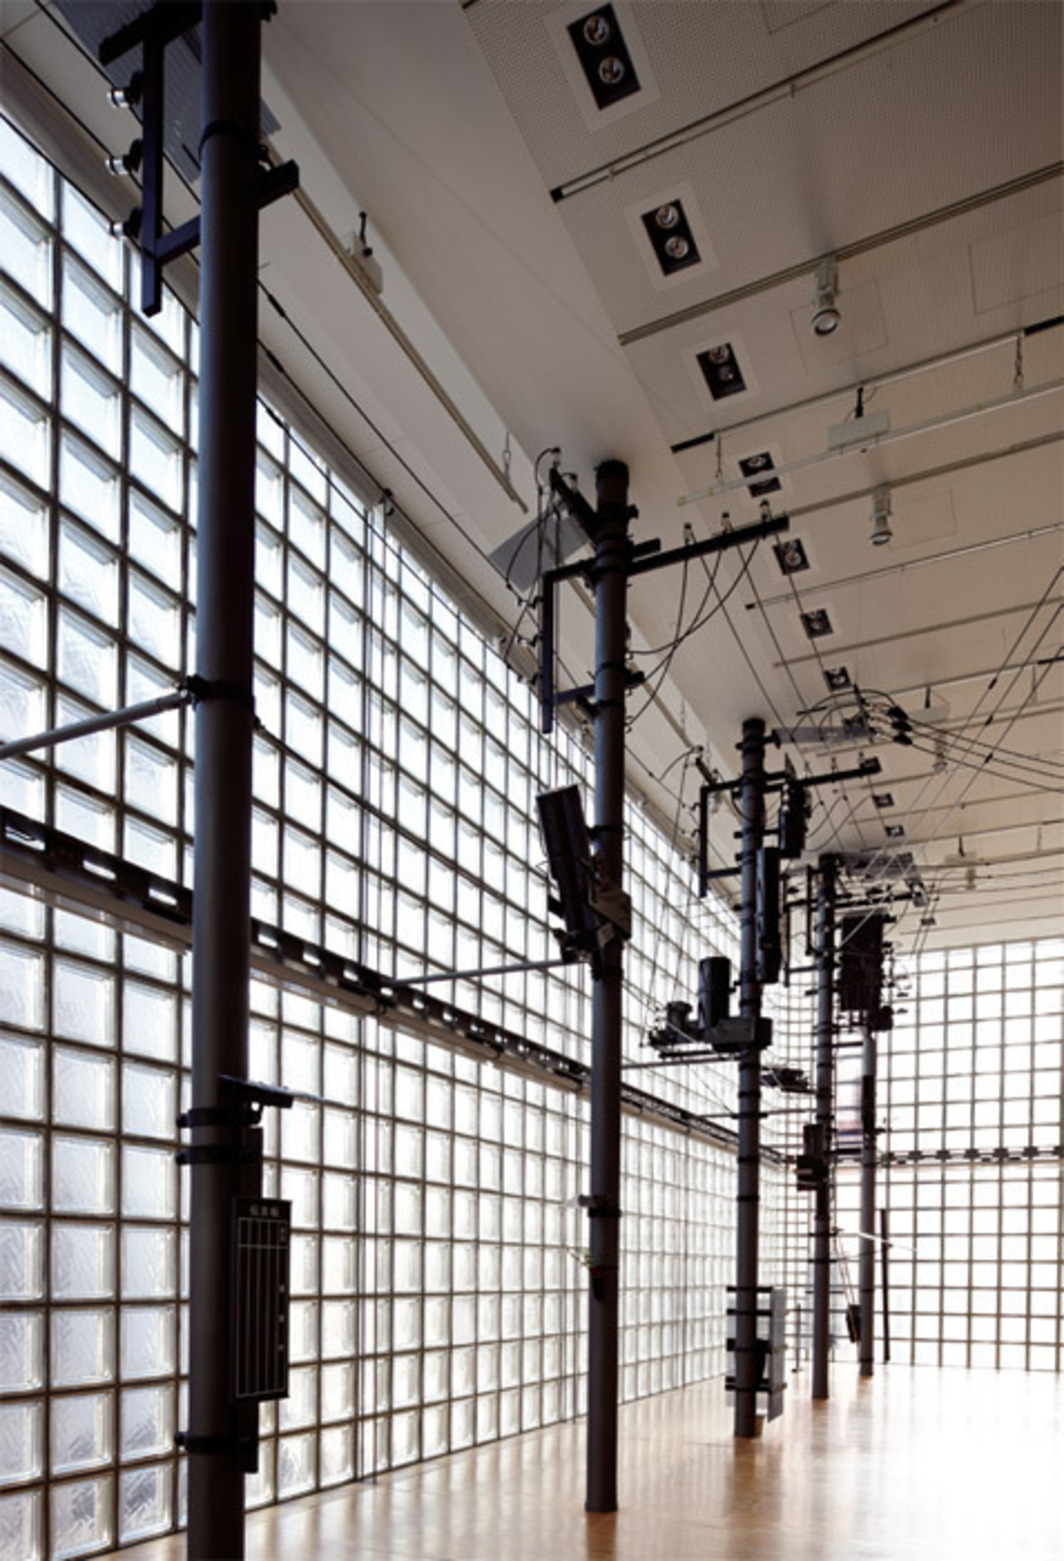 Akira Yamaguchi, Unforgettable Electric Poles, 2012, 